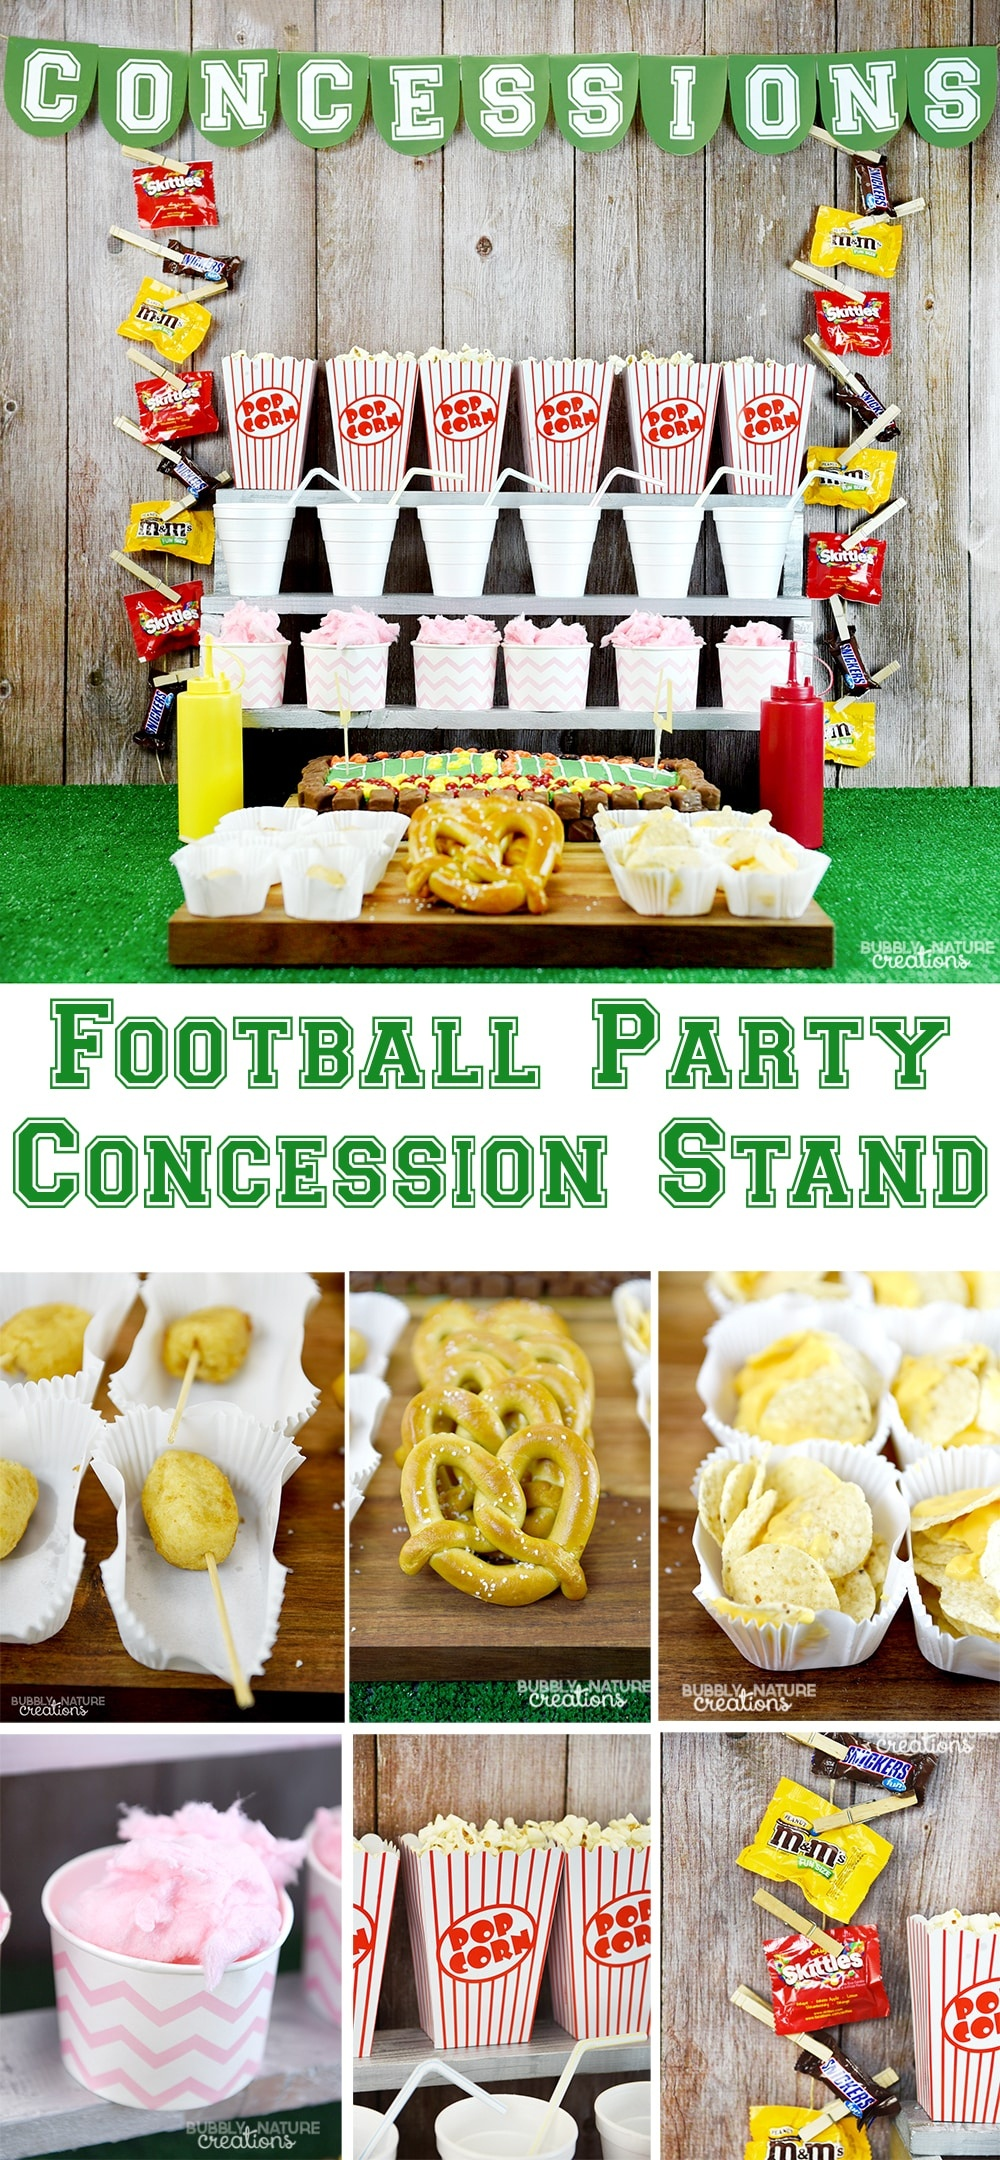 Football Party Concession Stand ⋆ Sprinkle Some Fun - Free Concessions Printable